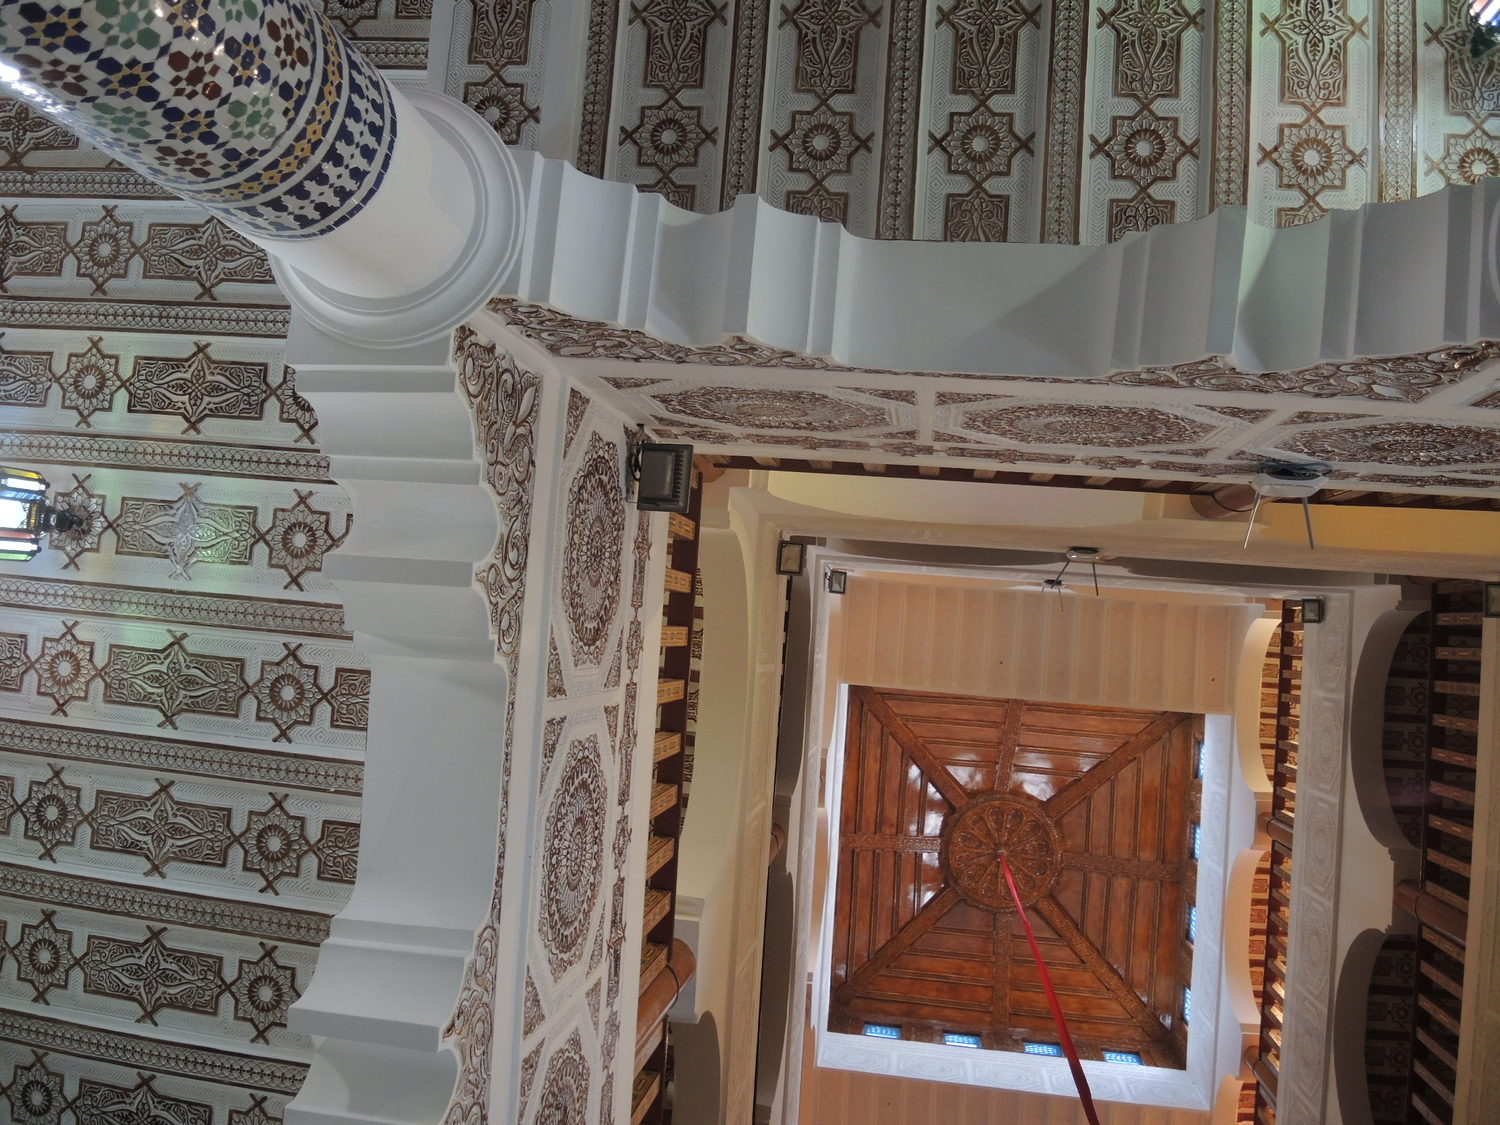 Inside of a riad